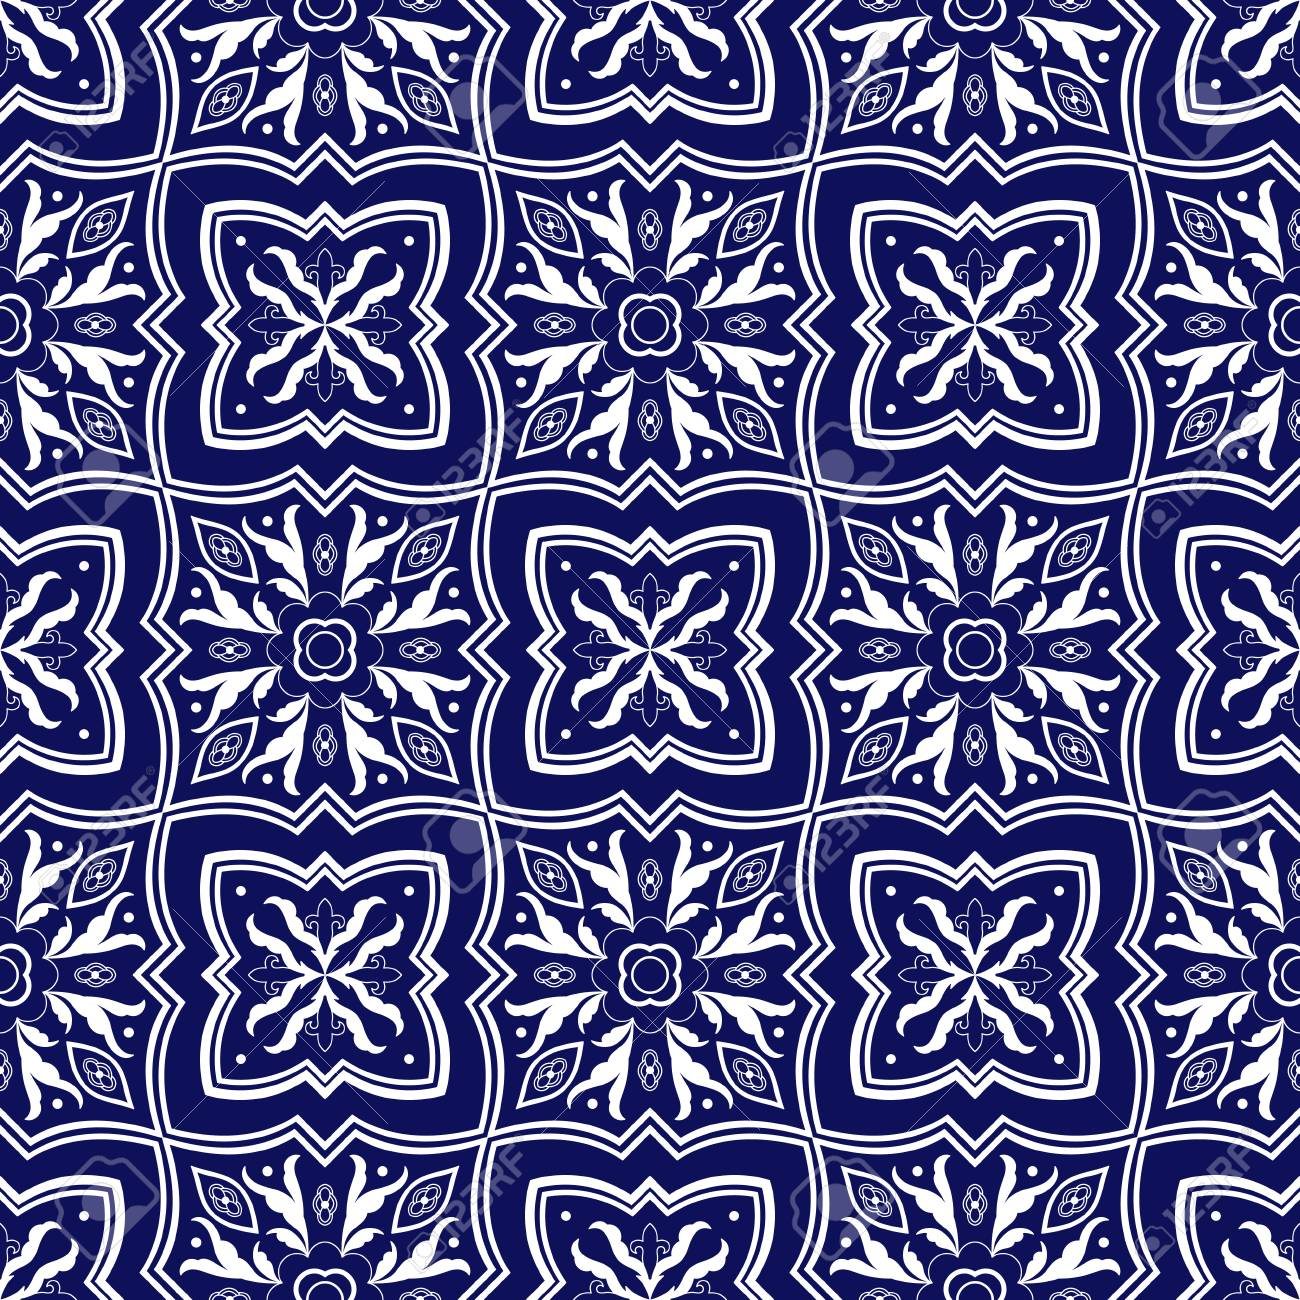 italian tile pattern vector seamless with floral ornaments portuguese